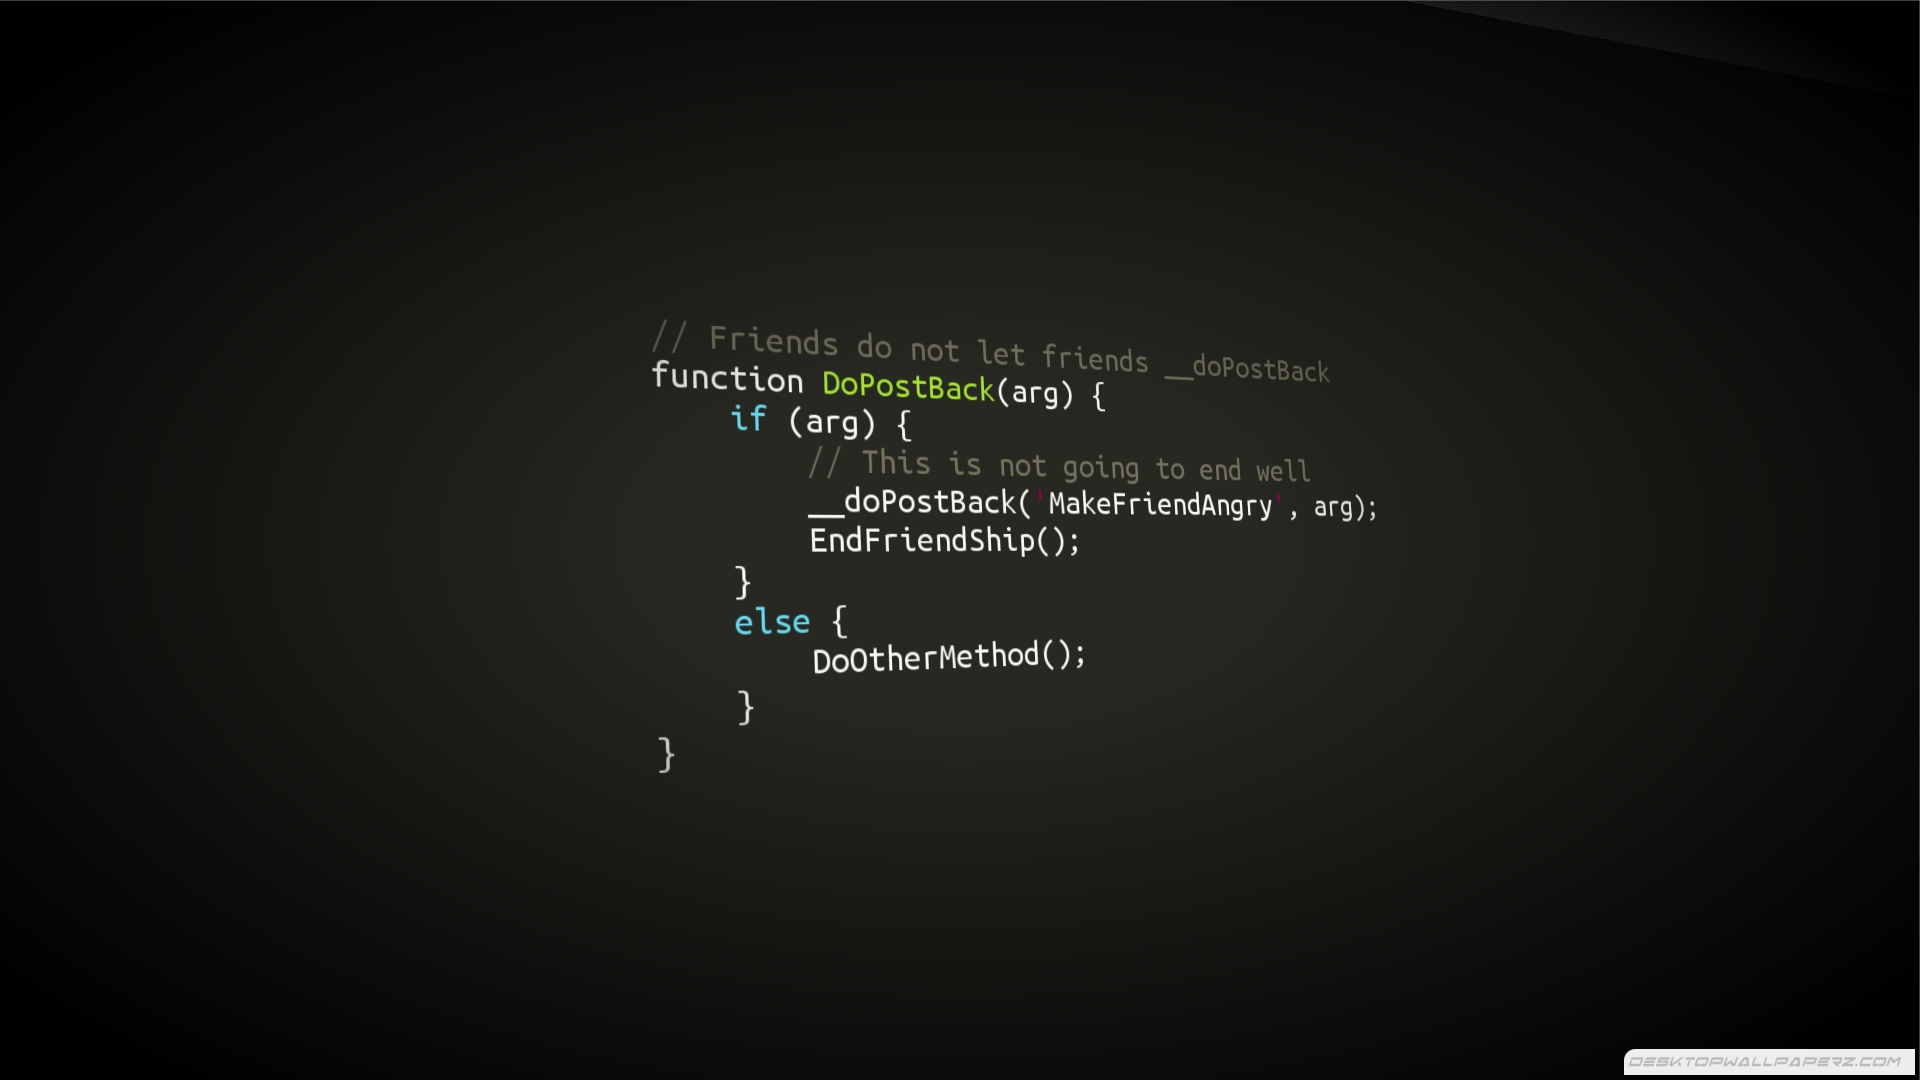 Programming Code Javascript Friendship 19201080 74072 HD Wallpaper 1920x1080